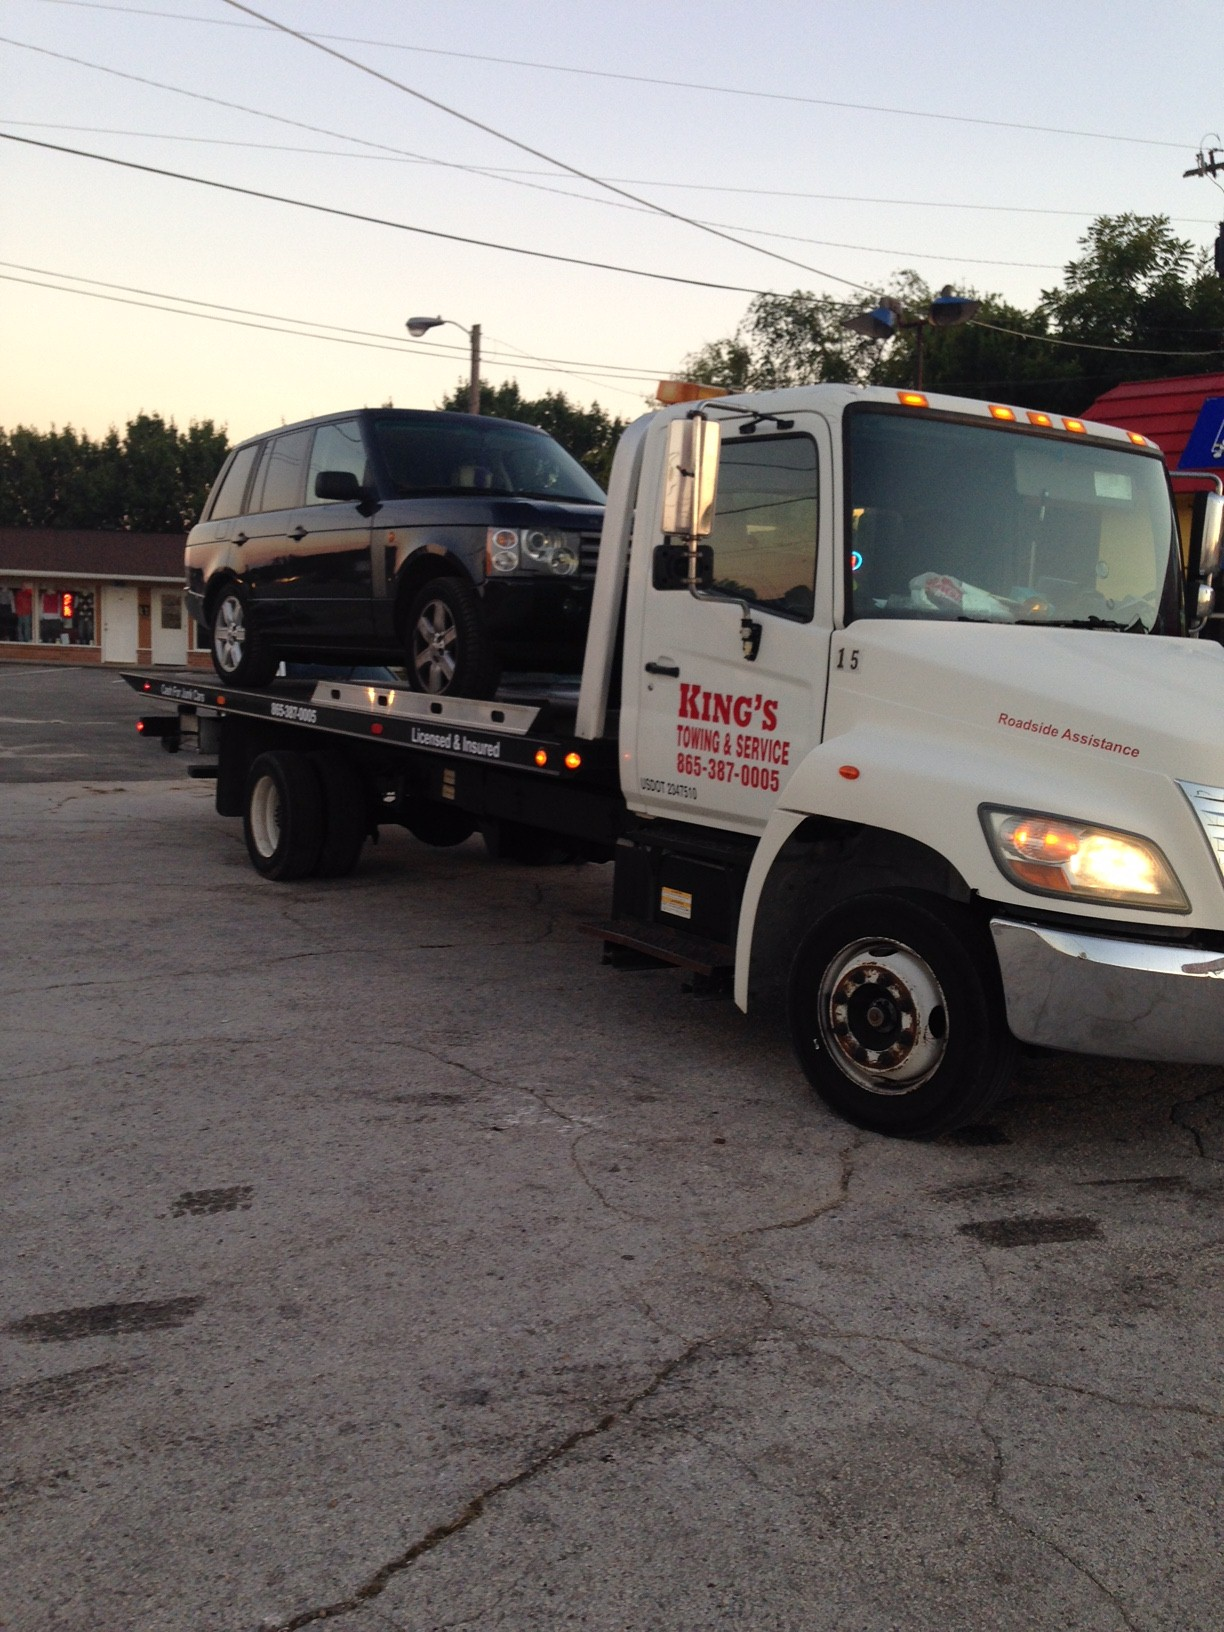 Kings Towing Service 4657 Western Ave Knoxville Tn 37921